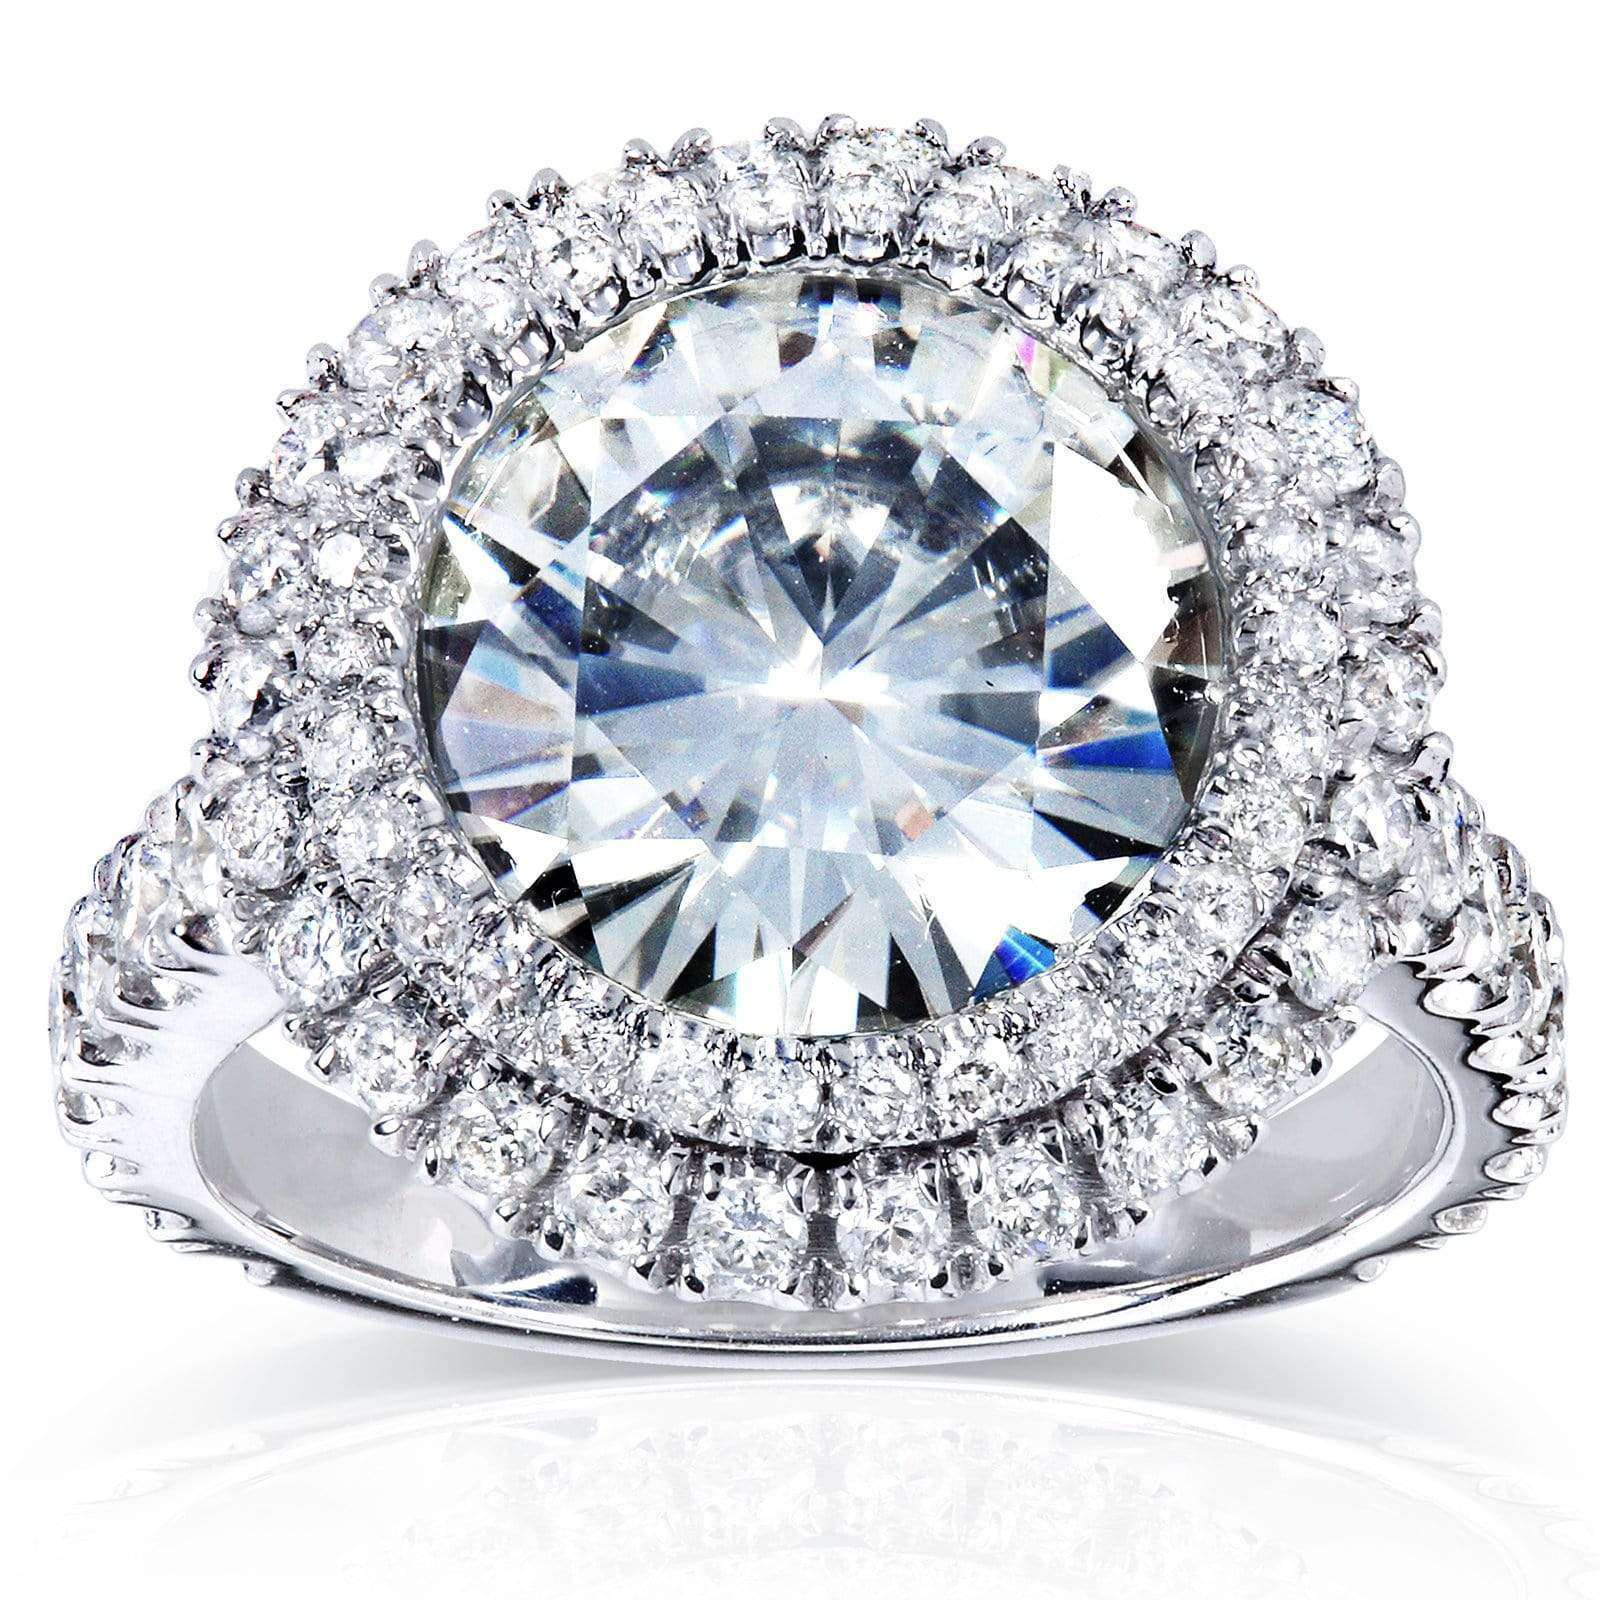 Top Double Halo Near-Colorless (F-G) Moissanite Engagement Ring with Diamond 5 7/8 CTW 14k White Gold - 9.5